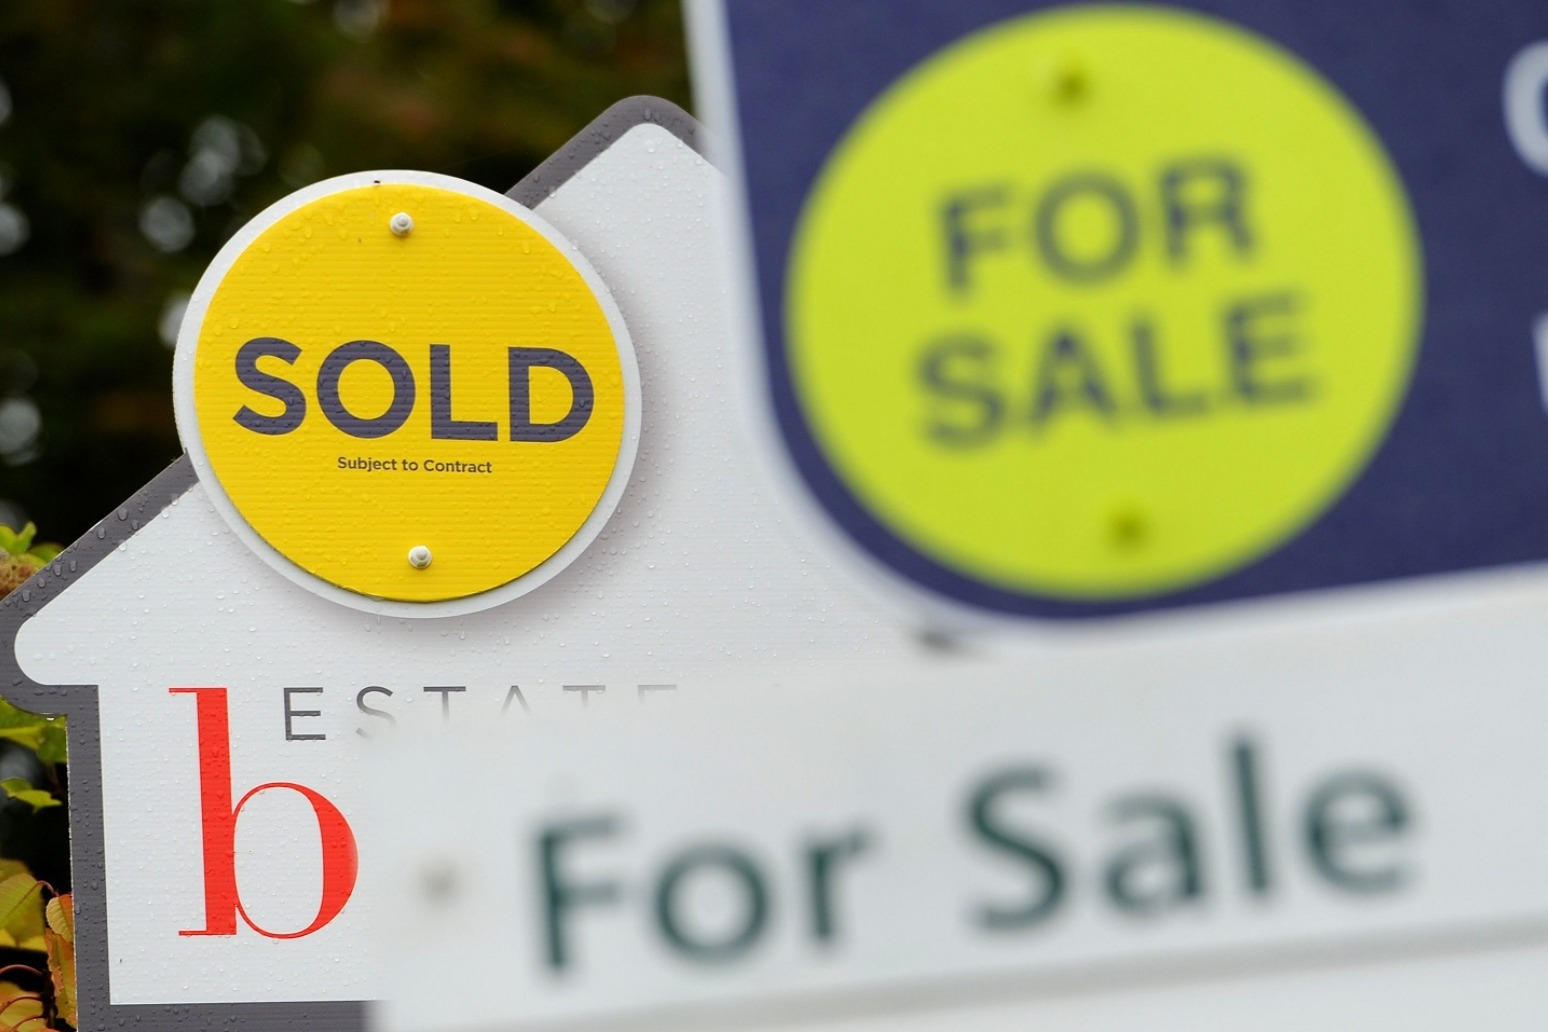 Average UK house price falls by £4,000 month-on-month